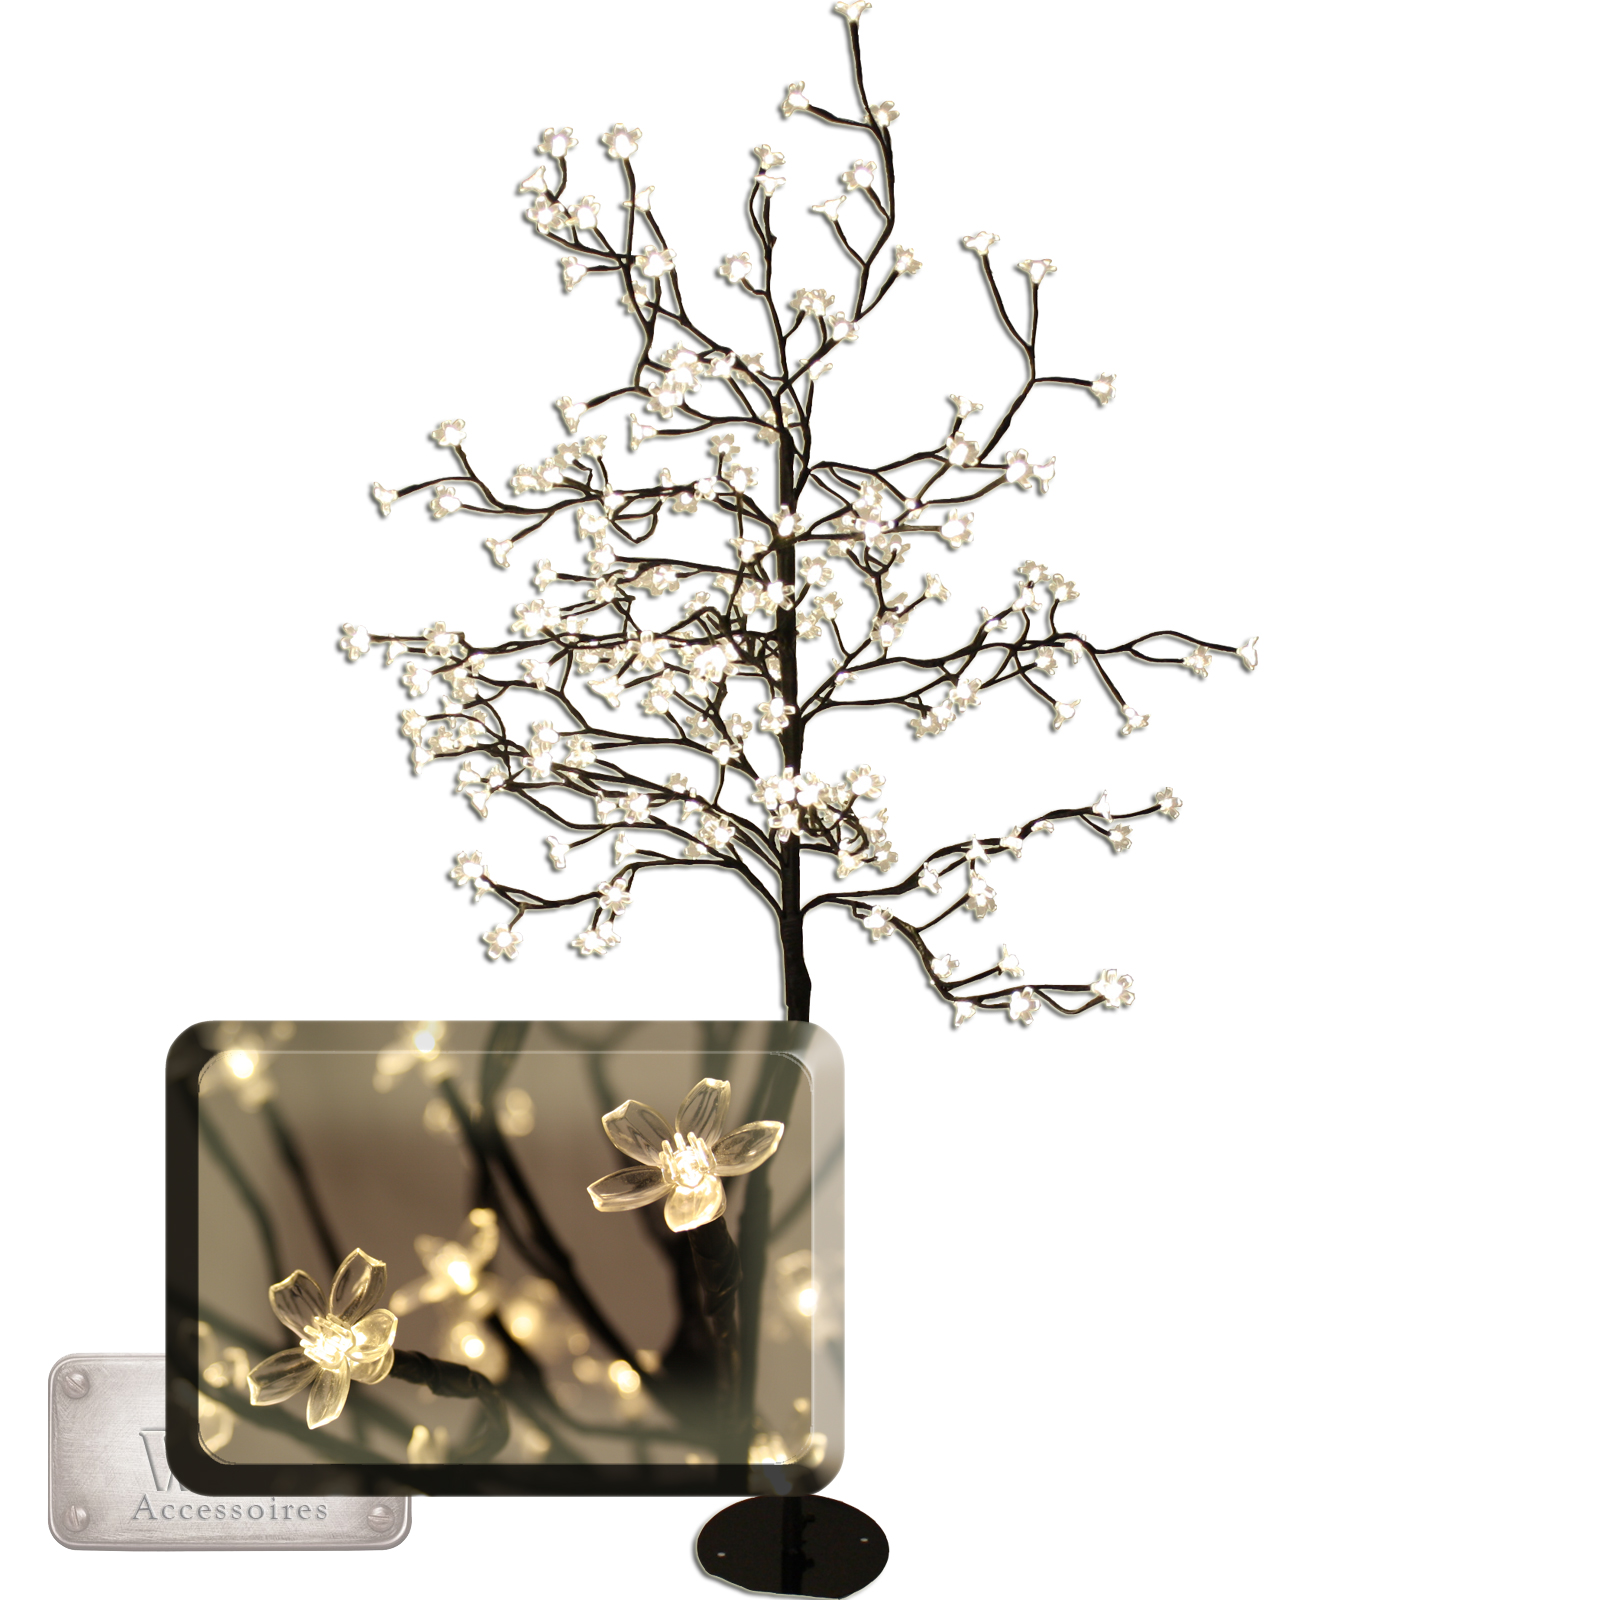 led baum lichtbaum leuchtbaum lichterkette 200leds 150cm. Black Bedroom Furniture Sets. Home Design Ideas